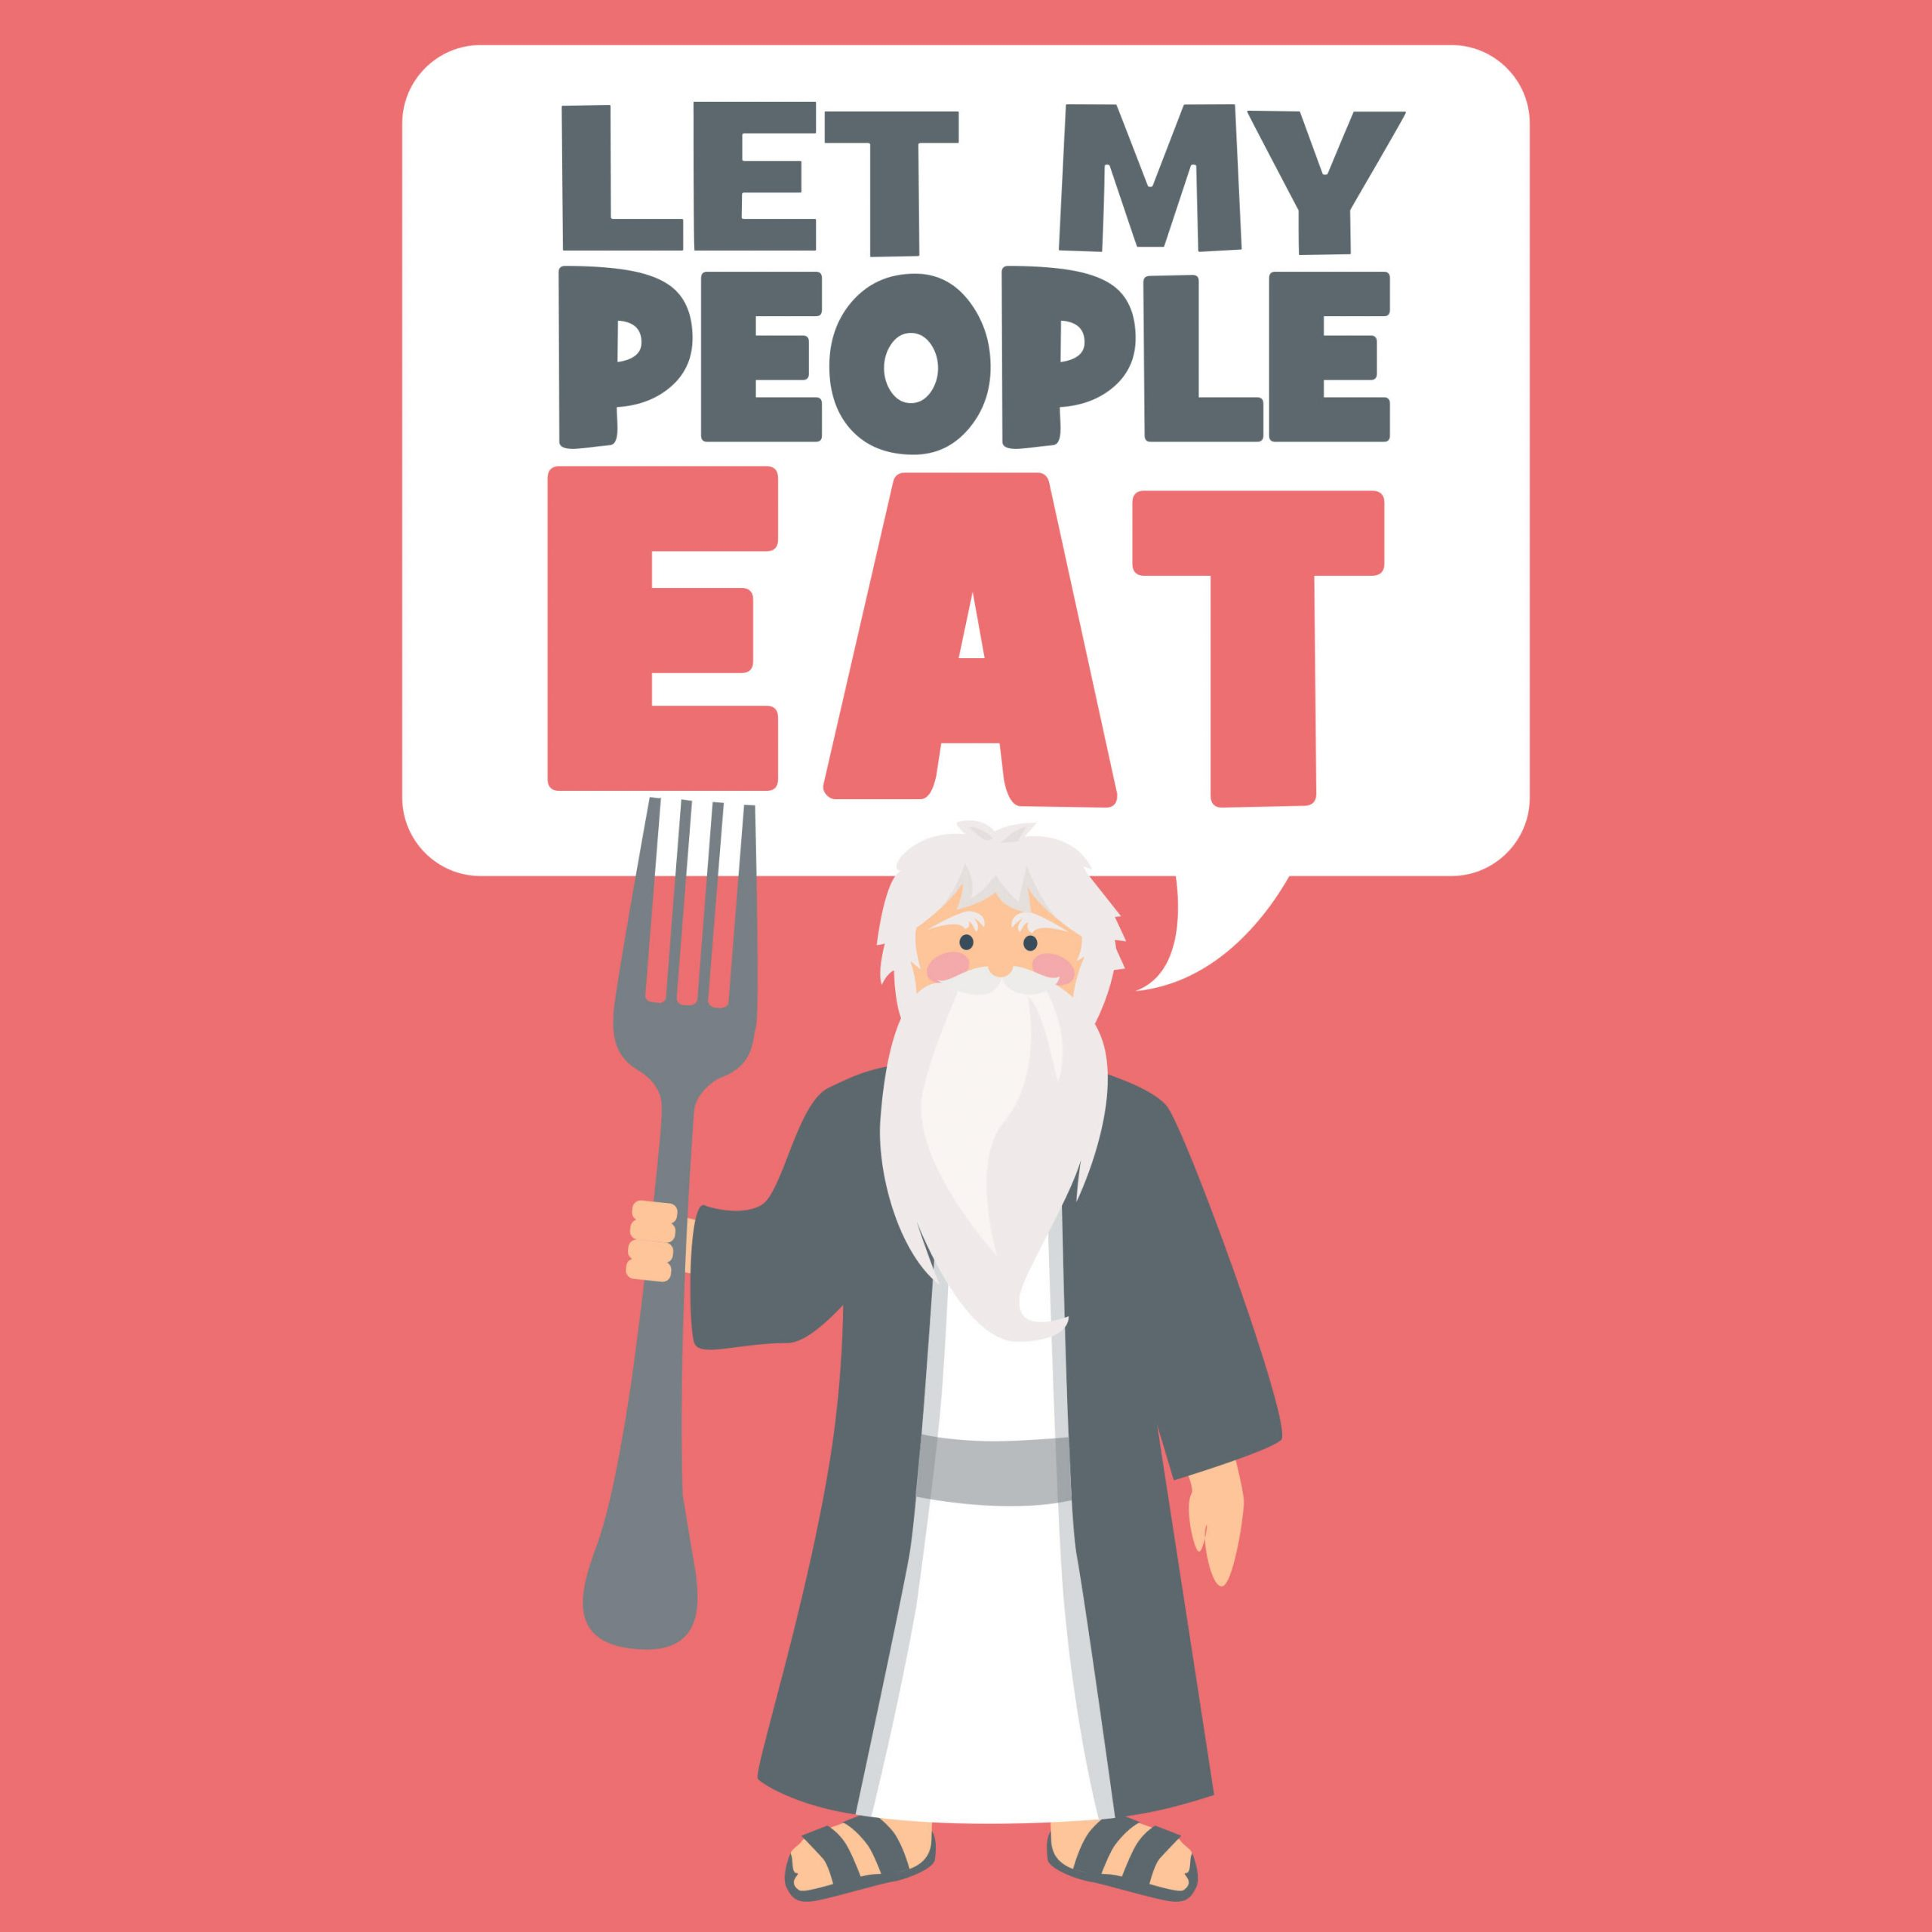 Let-My-People-Eat